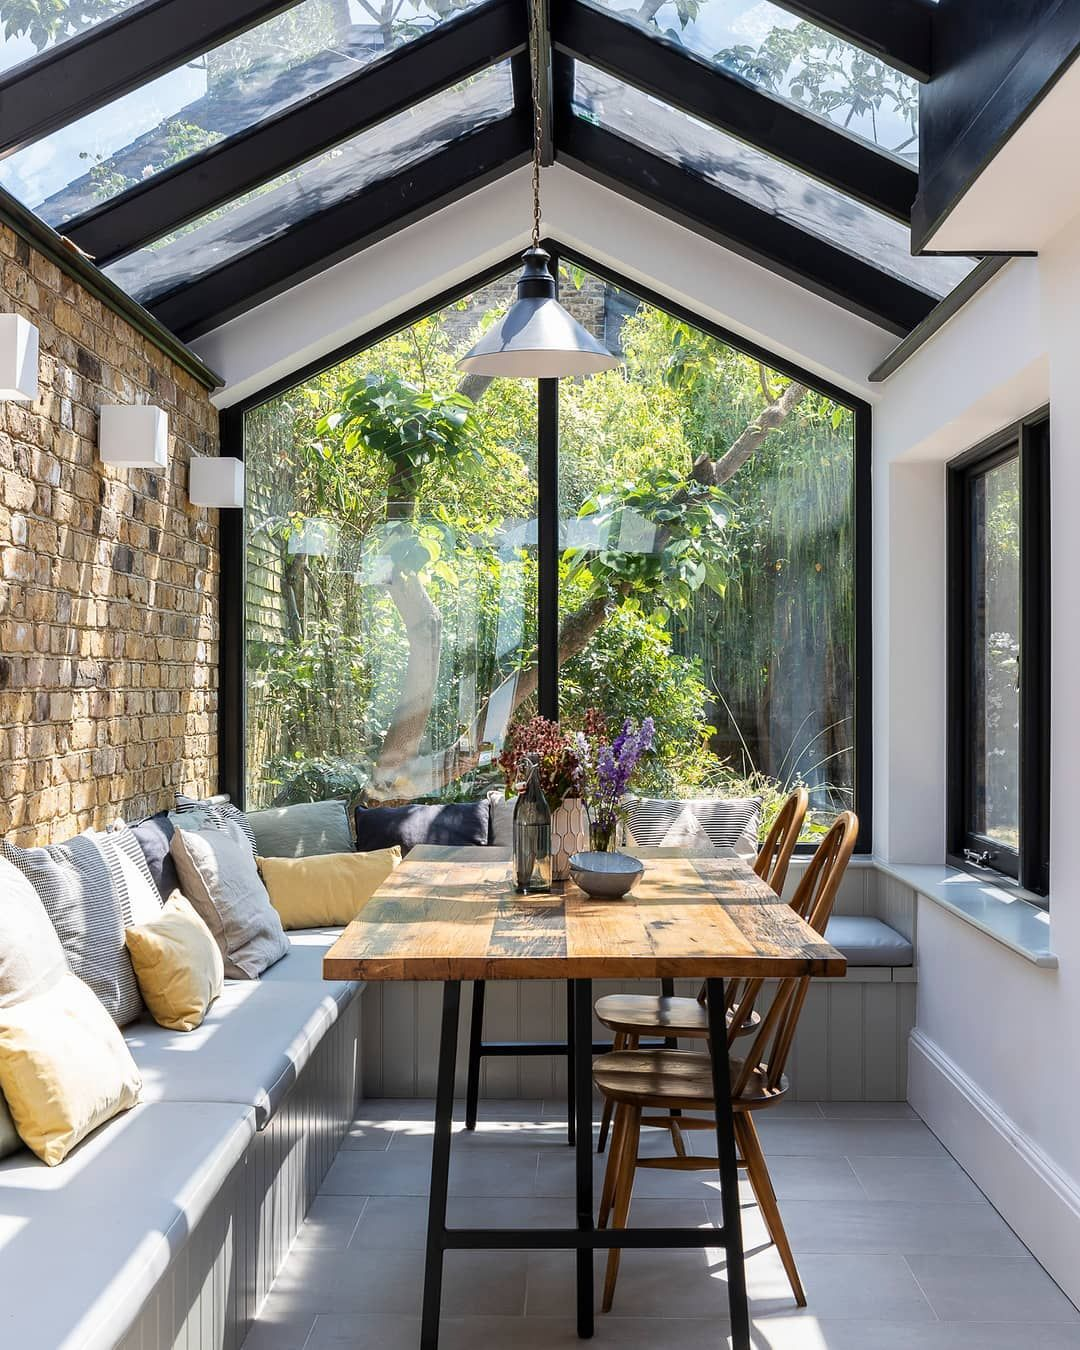 Houzz Home Design Ideas:  Houzz UK And Ireland On Instagram: Light Pours In Through